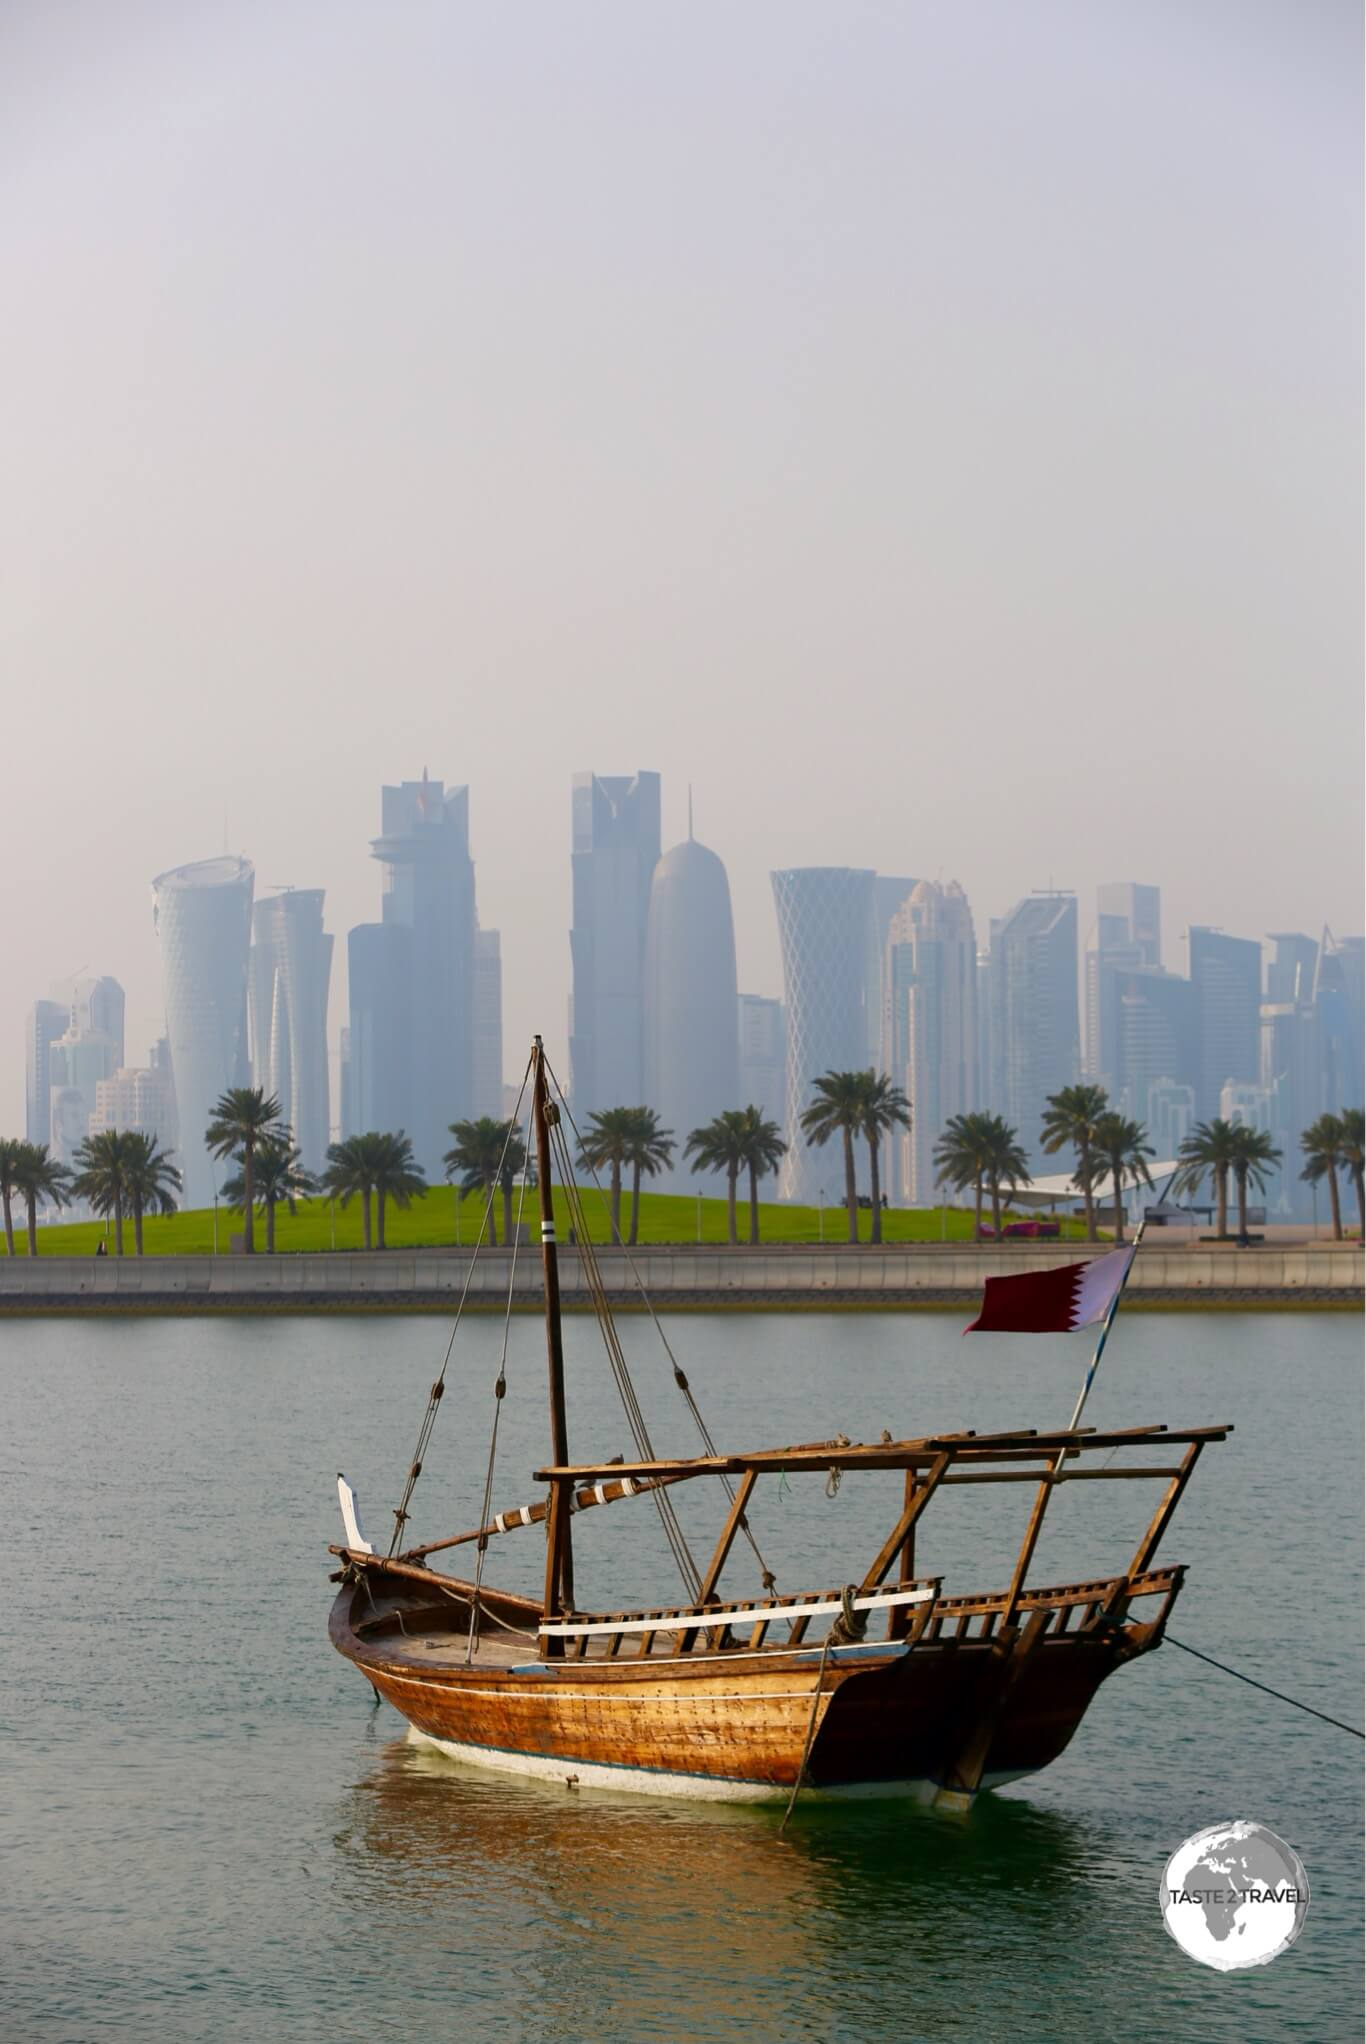 A traditional Dhow in Doha harbour.